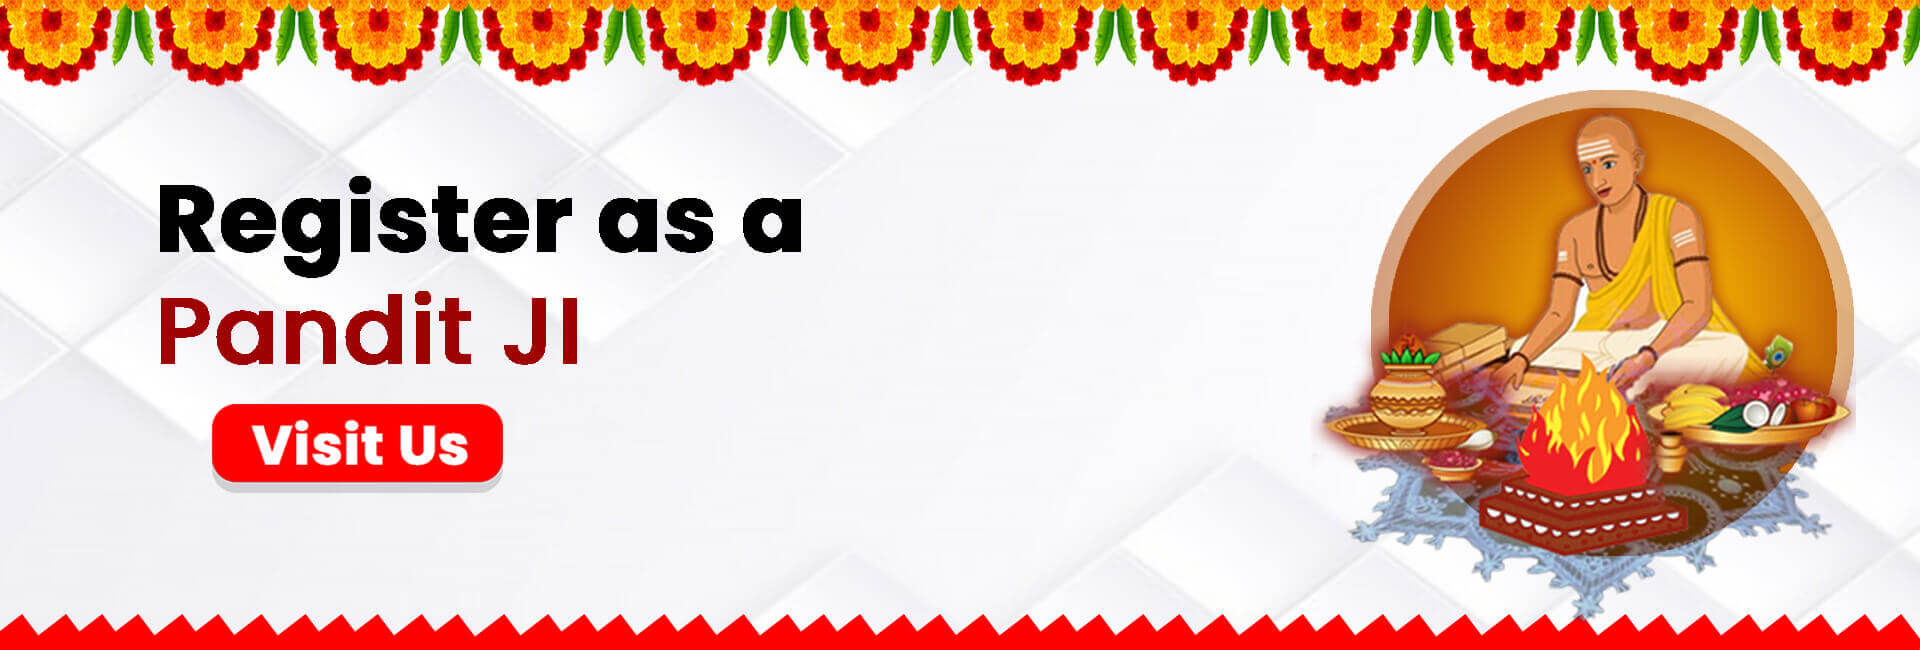 Register as a Pandit & Purohit online on bhagwanbhajan and get customers